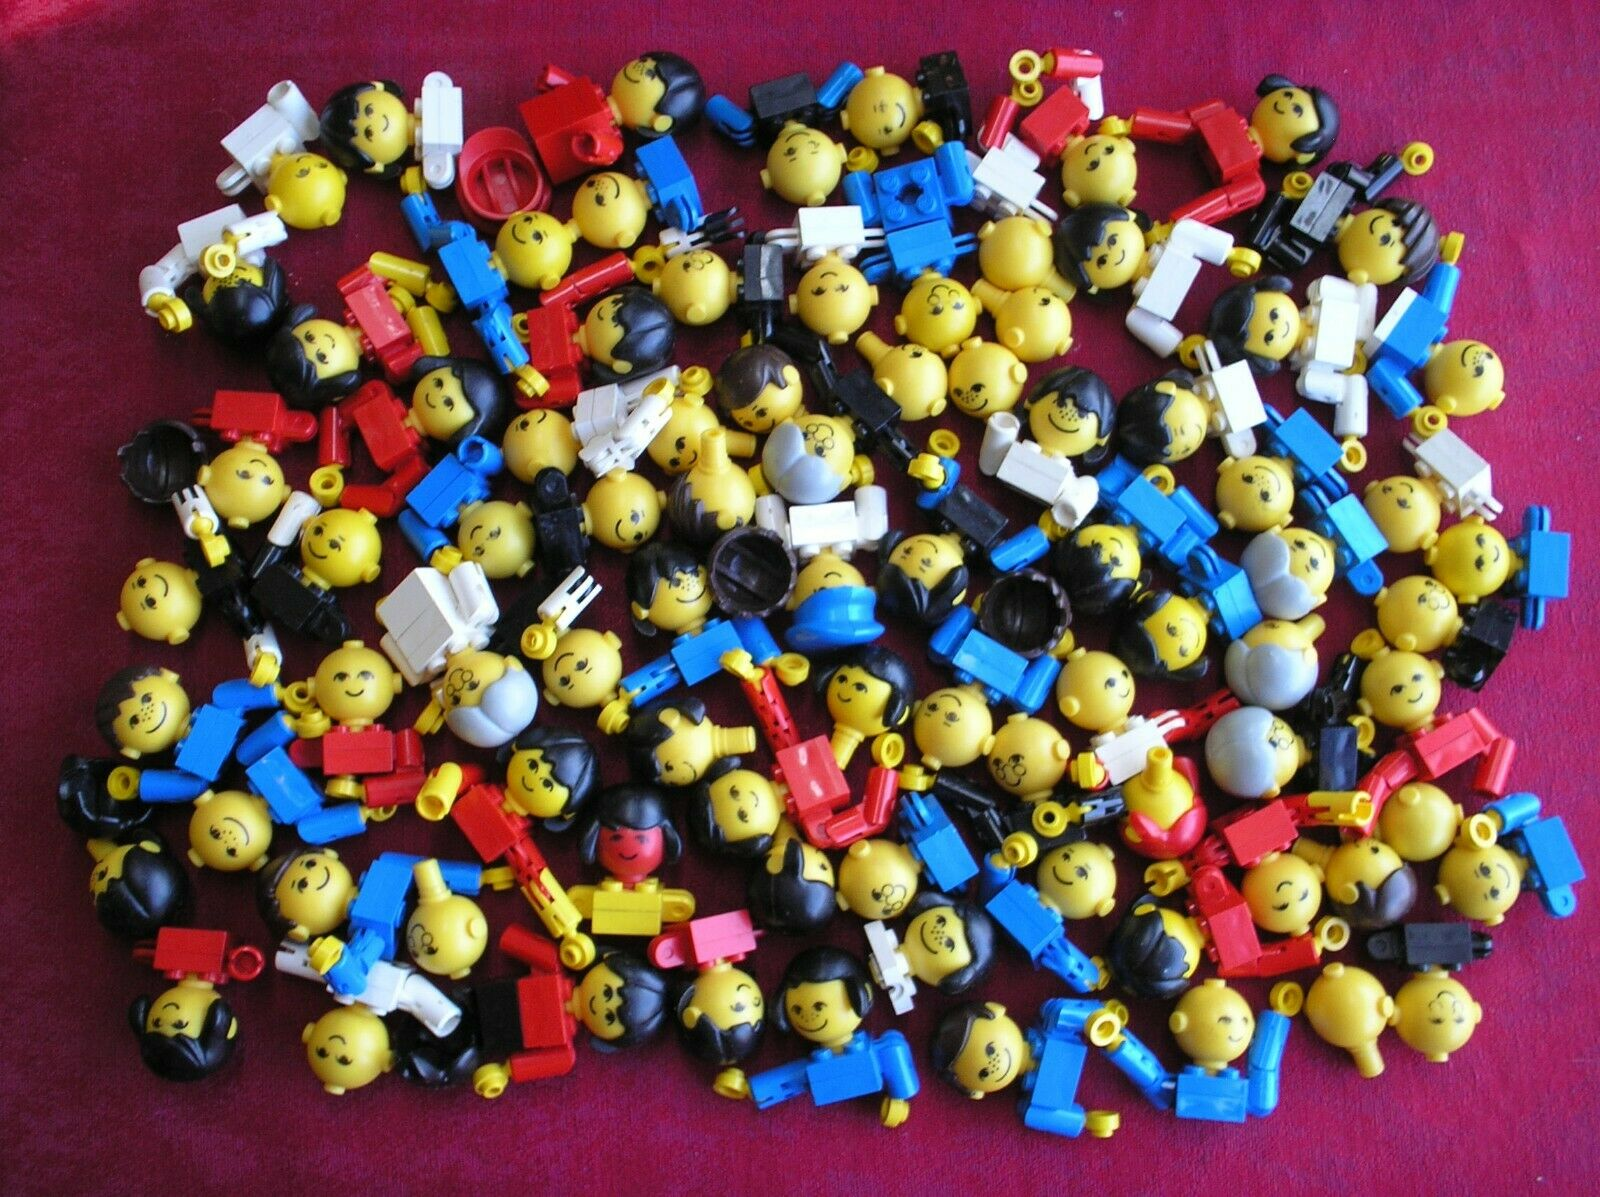 Lot 84 Personnages LEGO VINTAGE Homemaker minifig Maxifig 685px2 685px4 685px1